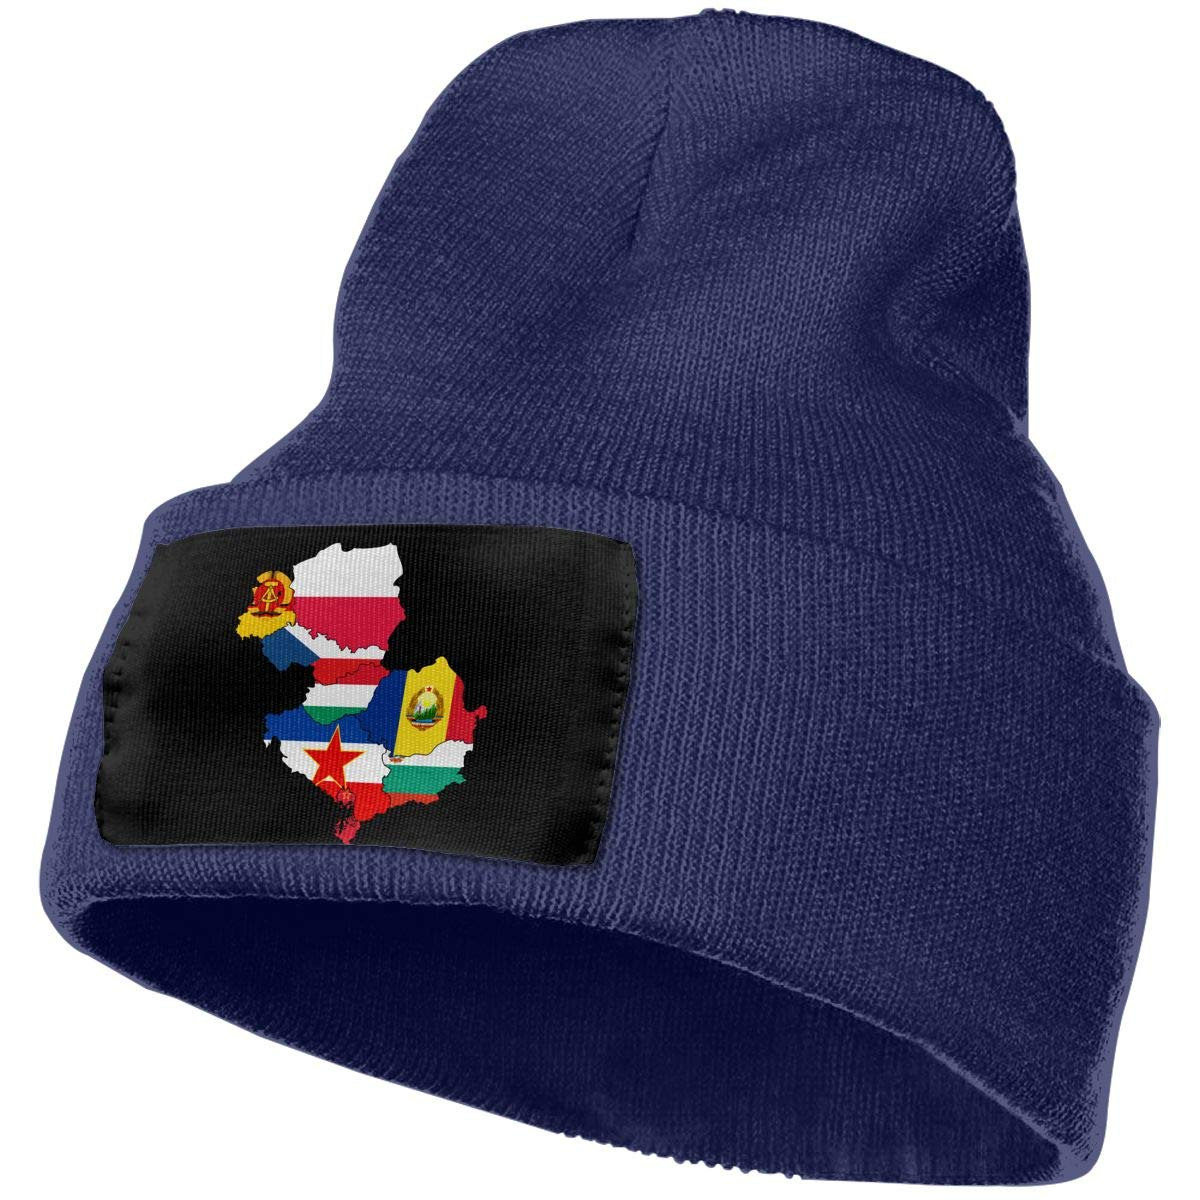 QZqDQ Flag Map of Eastern Bloc Countries Unisex Fashion Knitted Hat Luxury Hip-Hop Cap